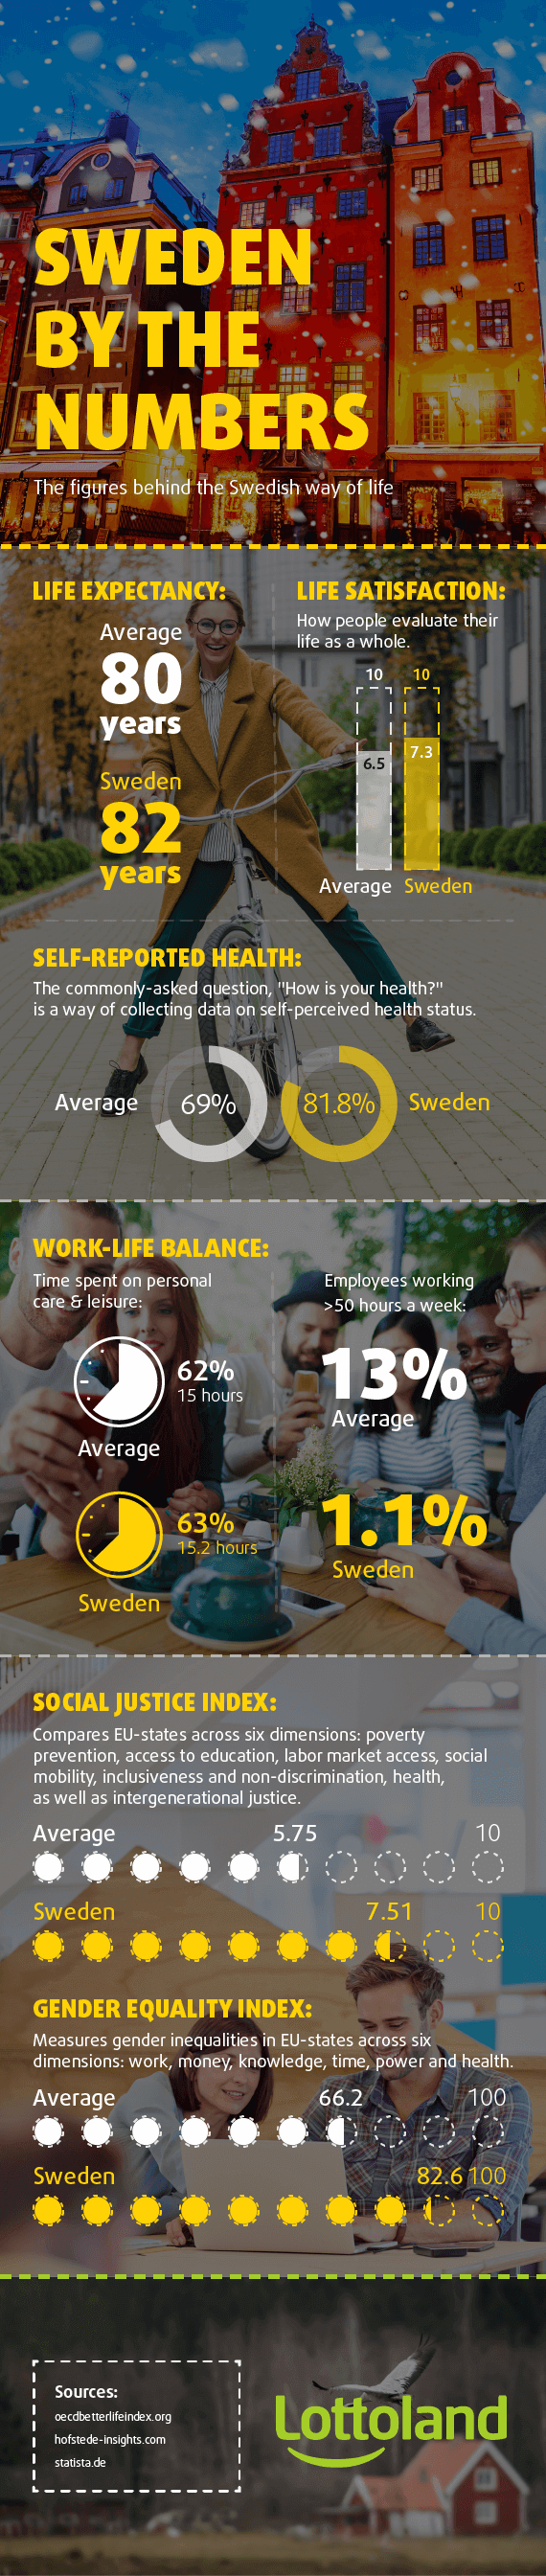 Infographic - Sweden by the numbers